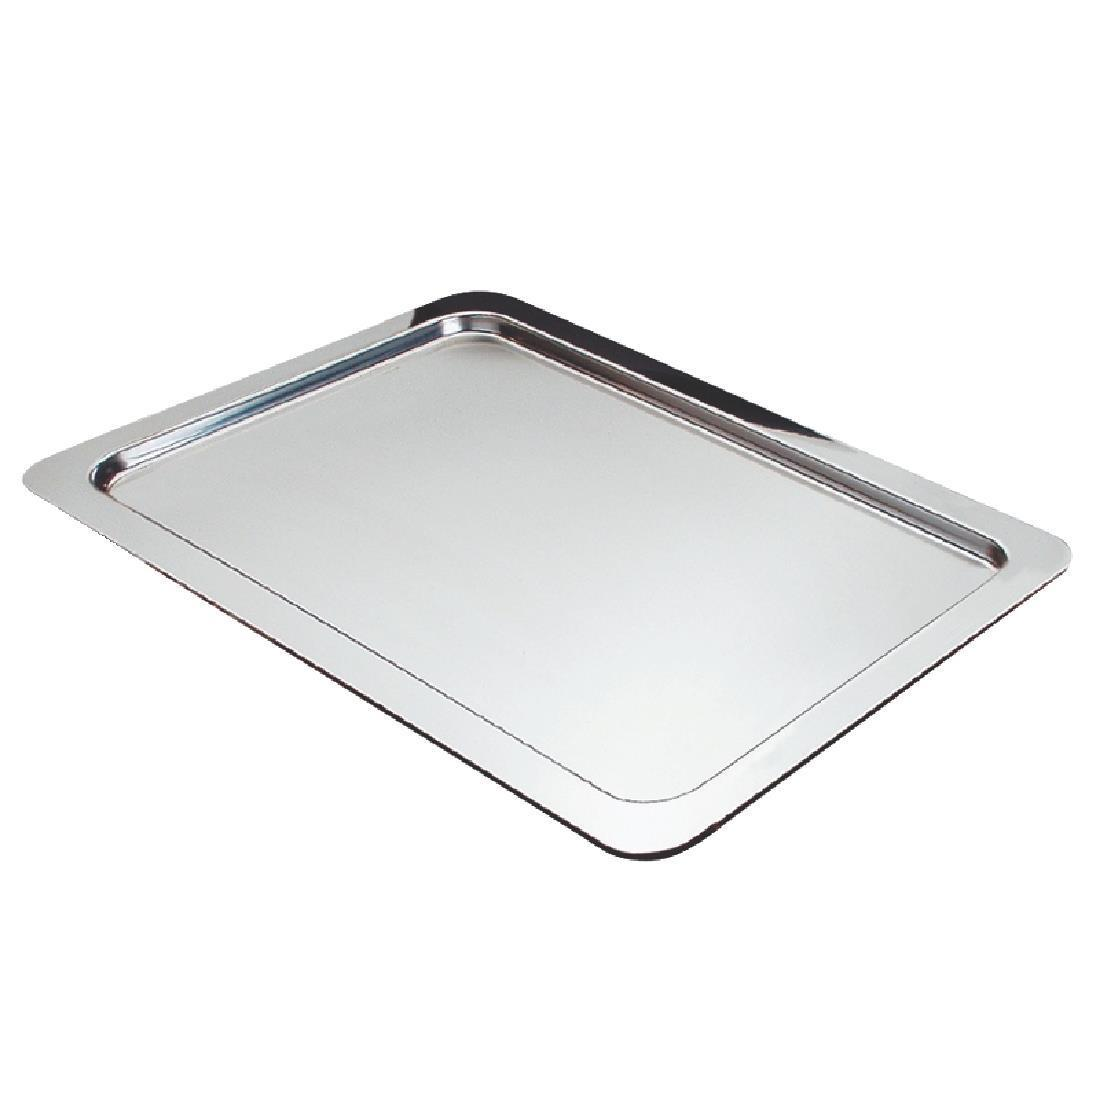 APS Stainless Steel Service Tray GN 1/1 - Each - CC464